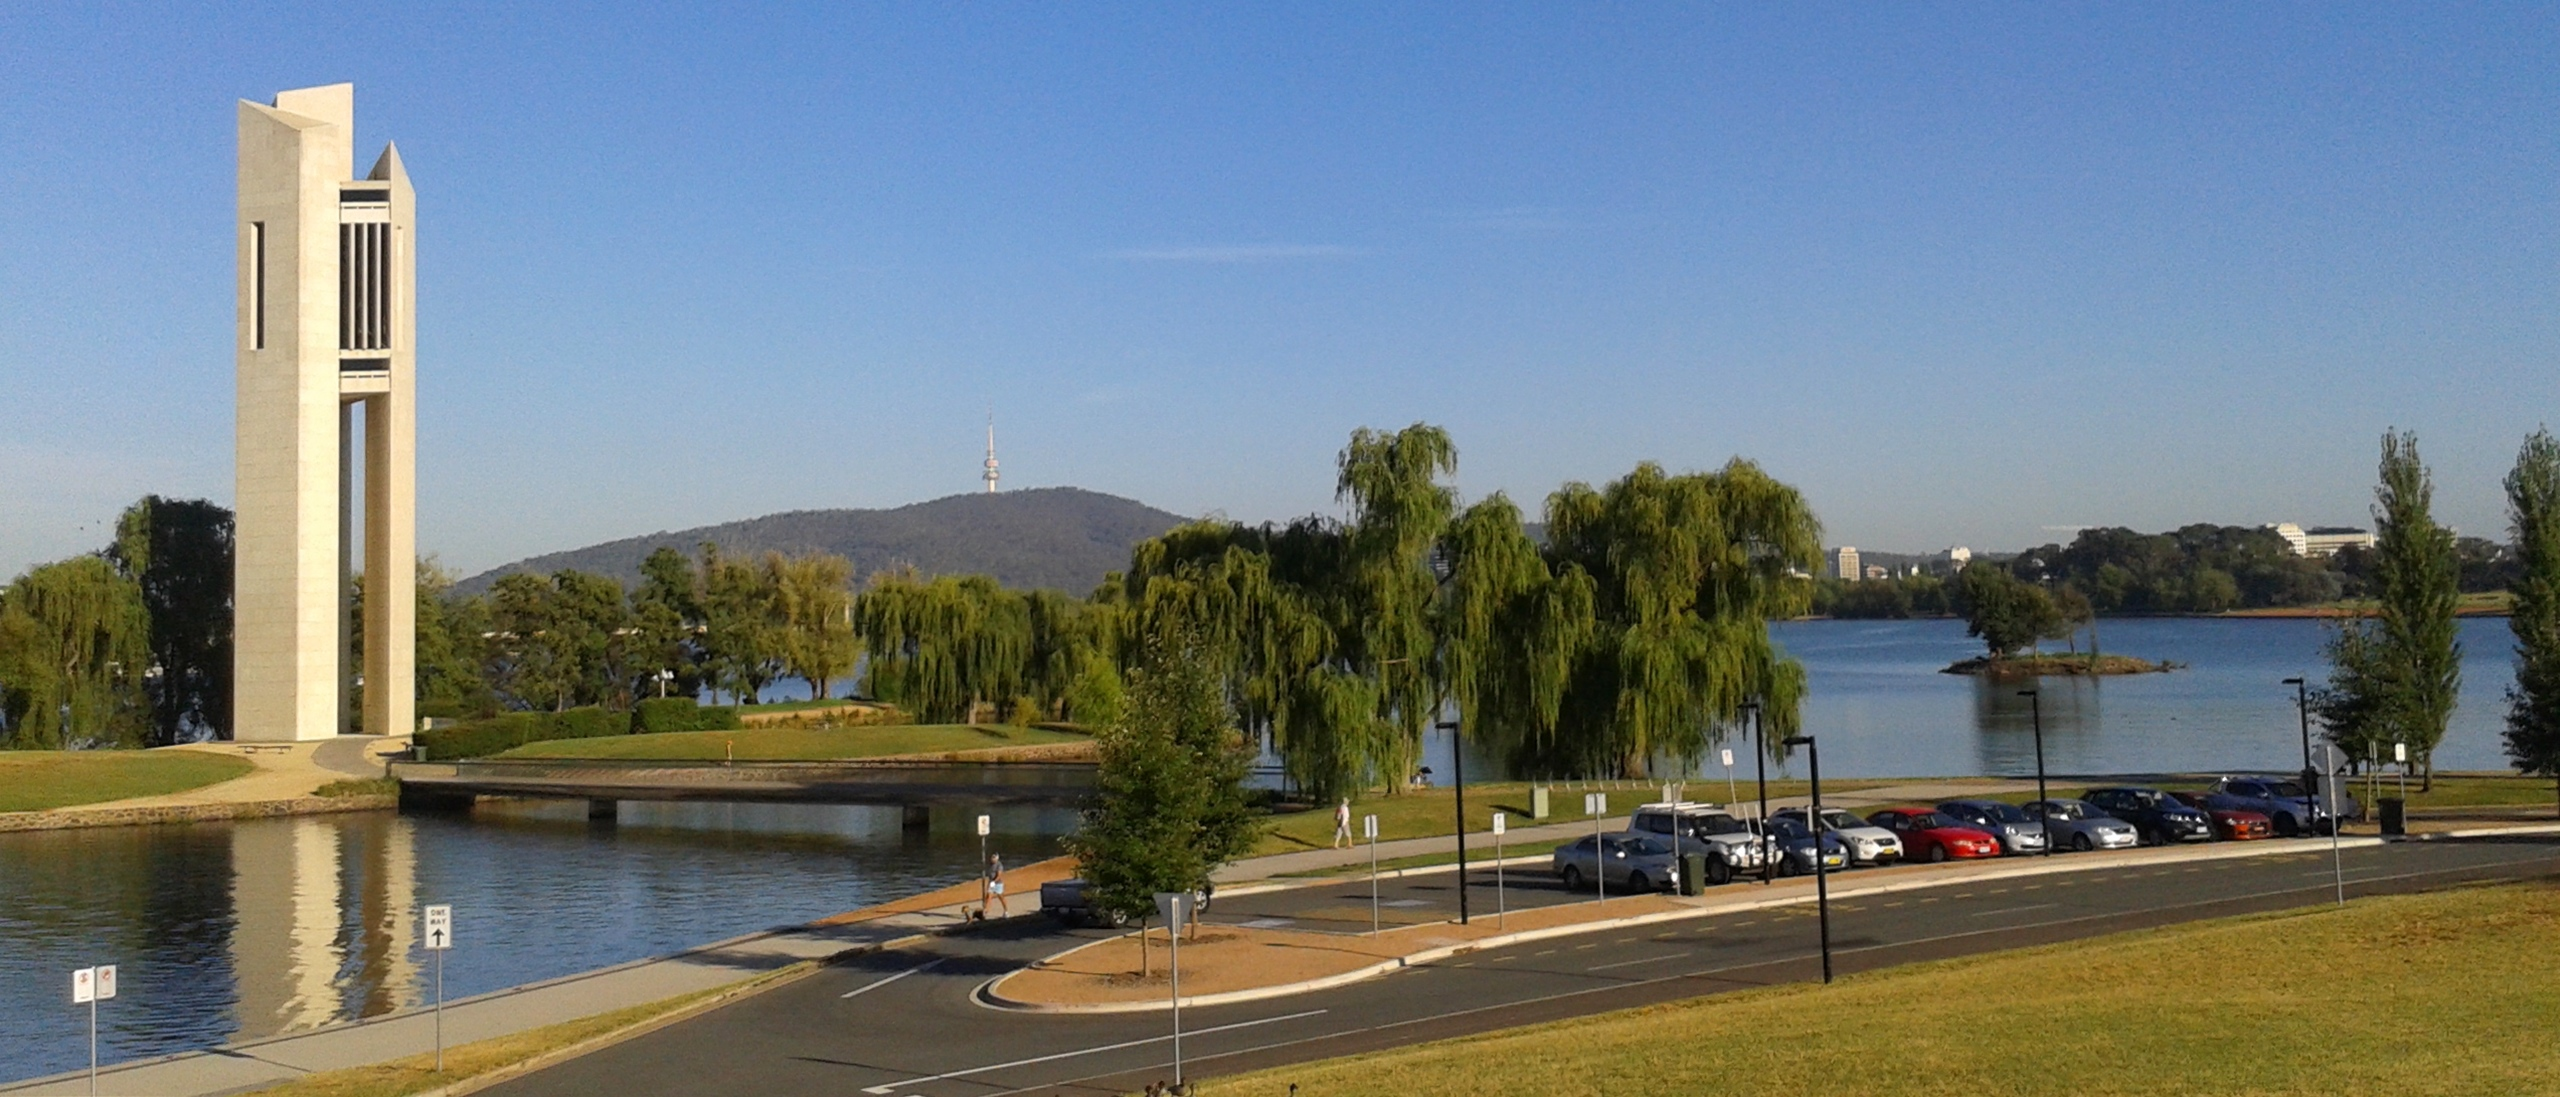 Quick guide 25 things to do around lake burley griffin canberra lake burley griffin canberra national carillon act aspen island kings park ccuart Image collections